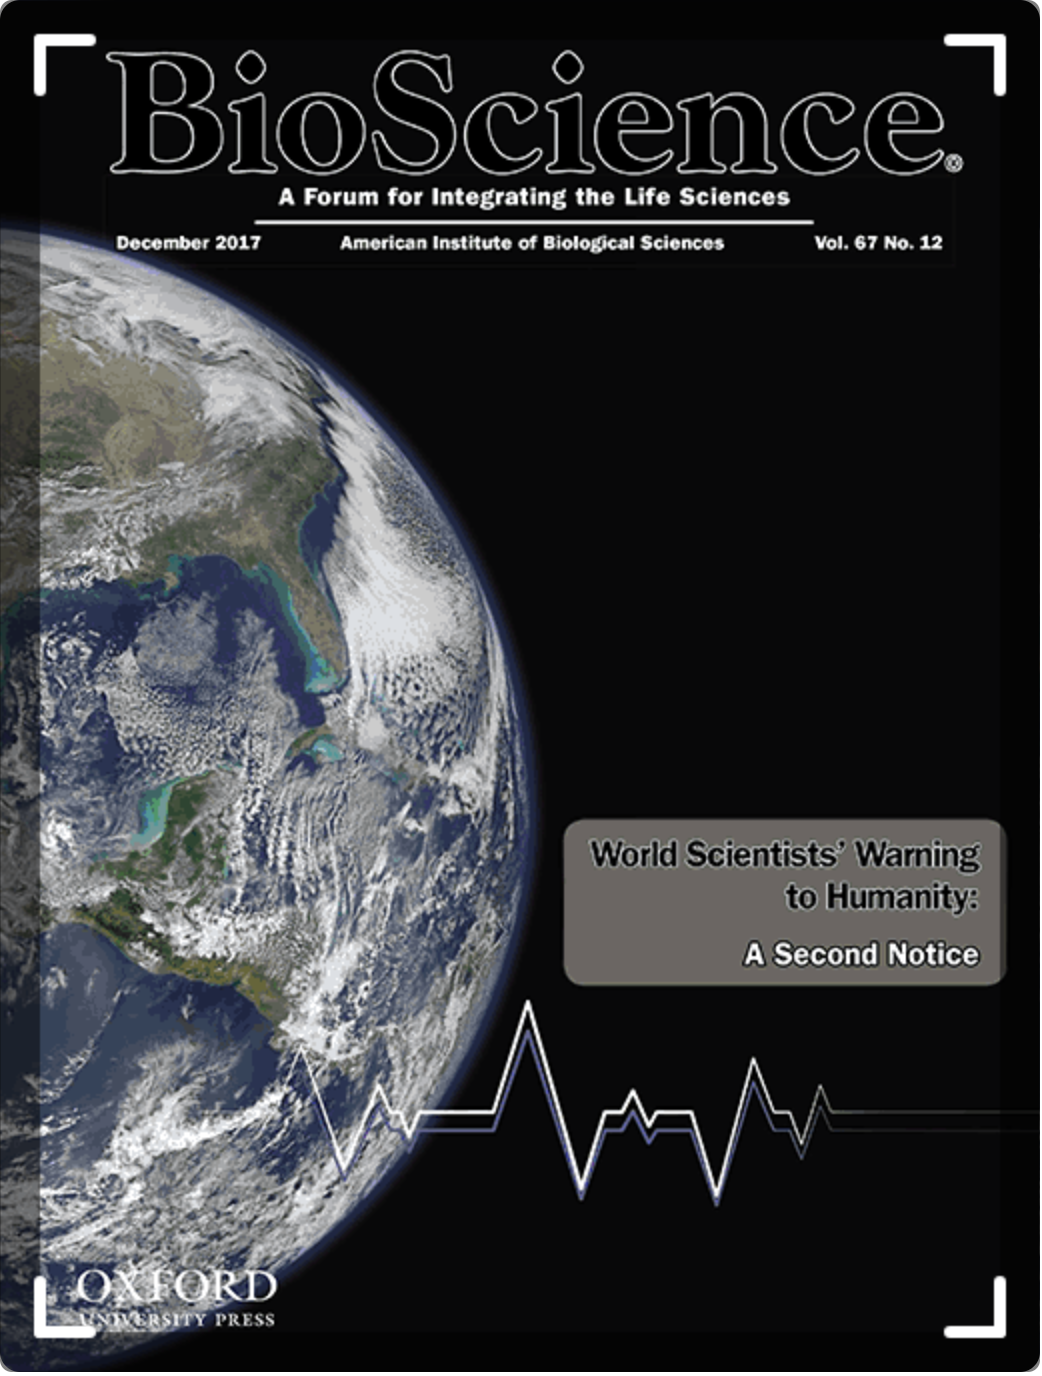 """""""World Scientists' Warning to Humanity: A Second Notice"""" was published in the journal BioScience in November 2017 with 15,372 signatories from a range of scientific disciplines (thought to be the largest-ever formal support by scientists for a journal article)."""